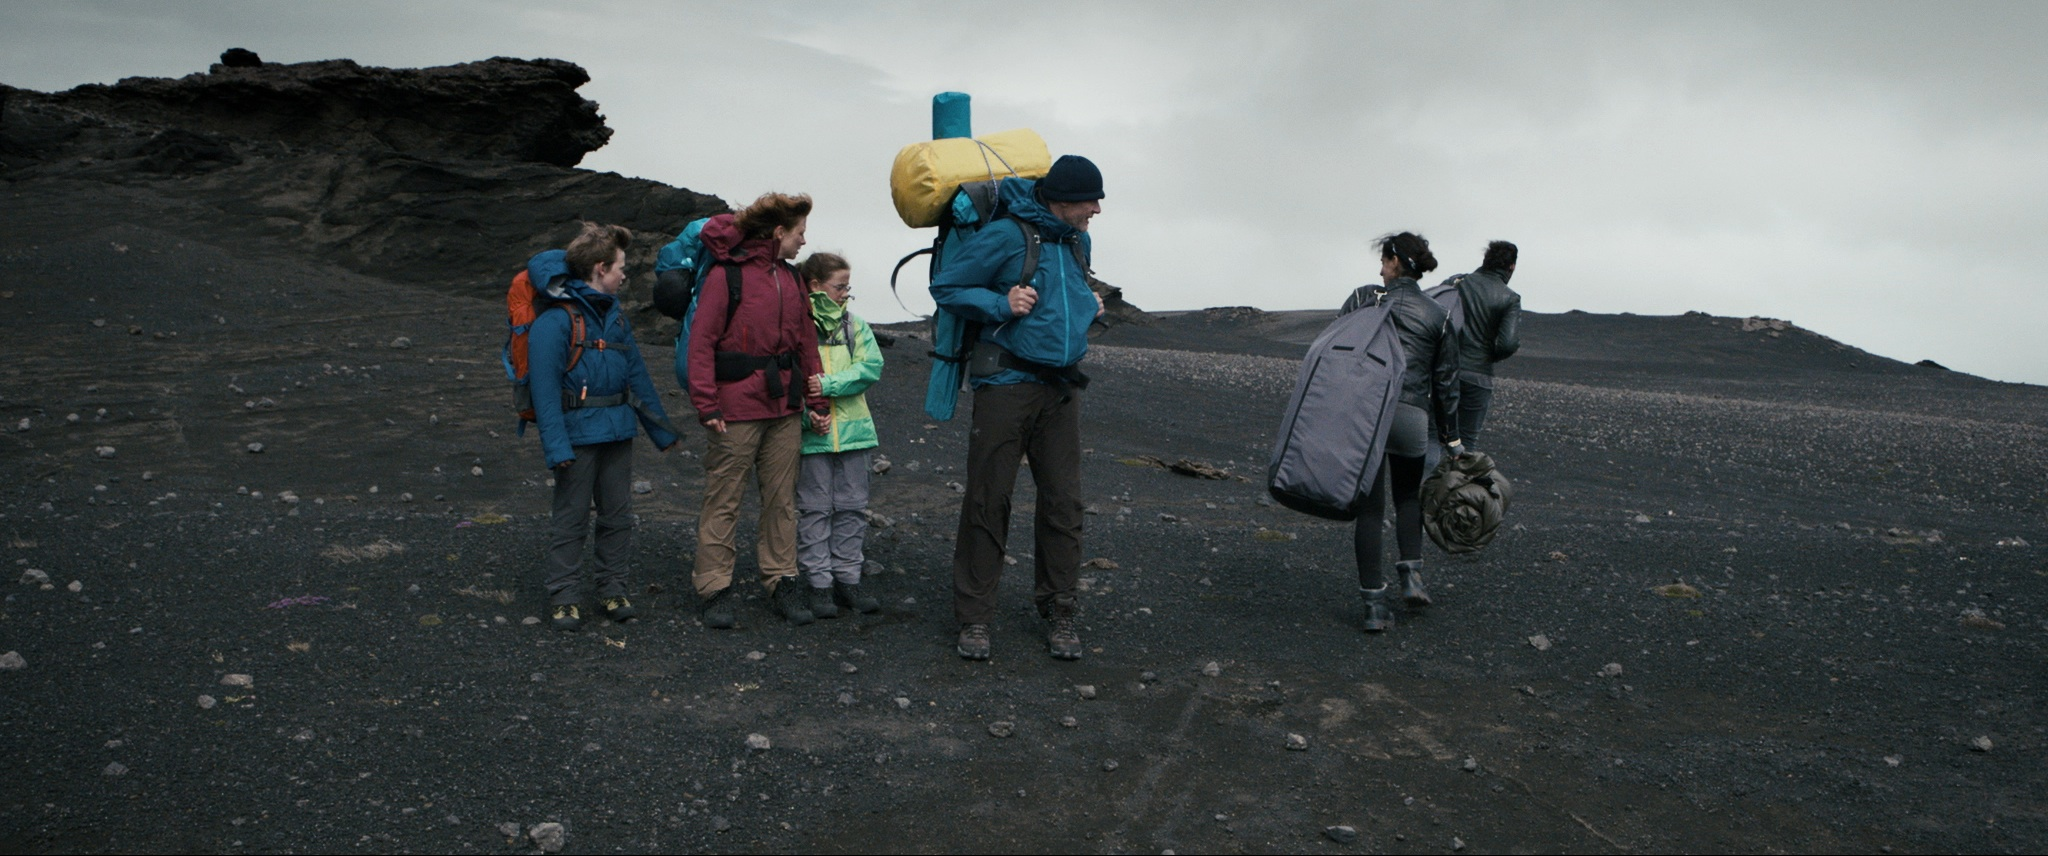 First encounter in the iceland desert